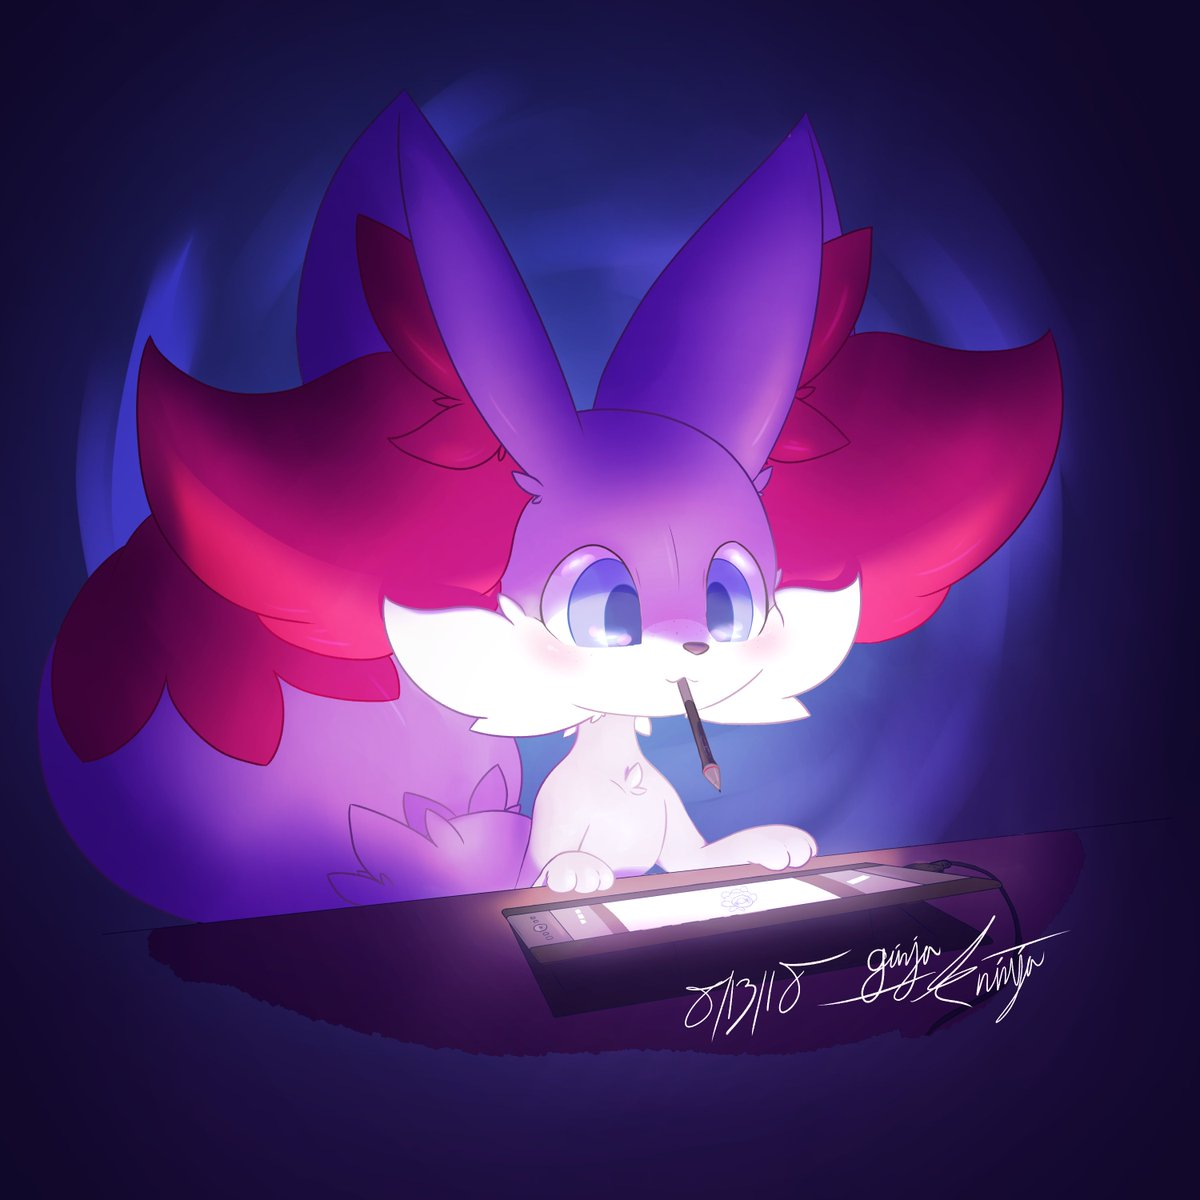 A little Fennekin who wants to be like her big brother and draw for people.   My little sister often walks in on my when I am drawing and live streaming. She says she wants to do it too and show people how she draws. ^^  #Pokemon #Art #GingyArt #Practice #Fennekin #ShinyPokemon<br>http://pic.twitter.com/Crl0h0nRBY